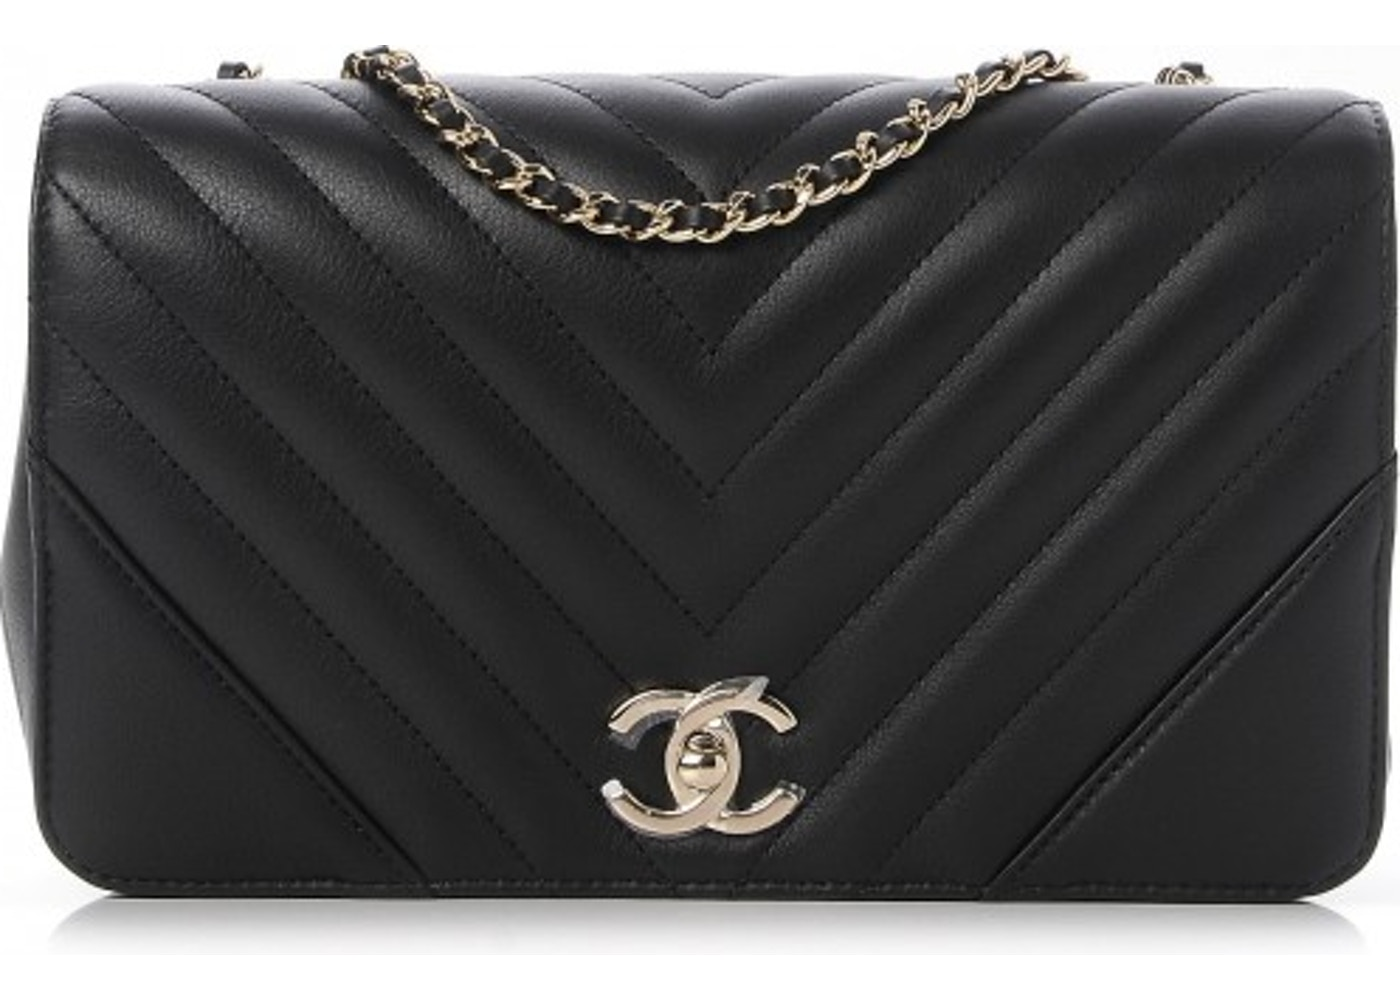 e040fcba9f47 Buy & Sell Chanel Flap Handbags - New Lowest Asks